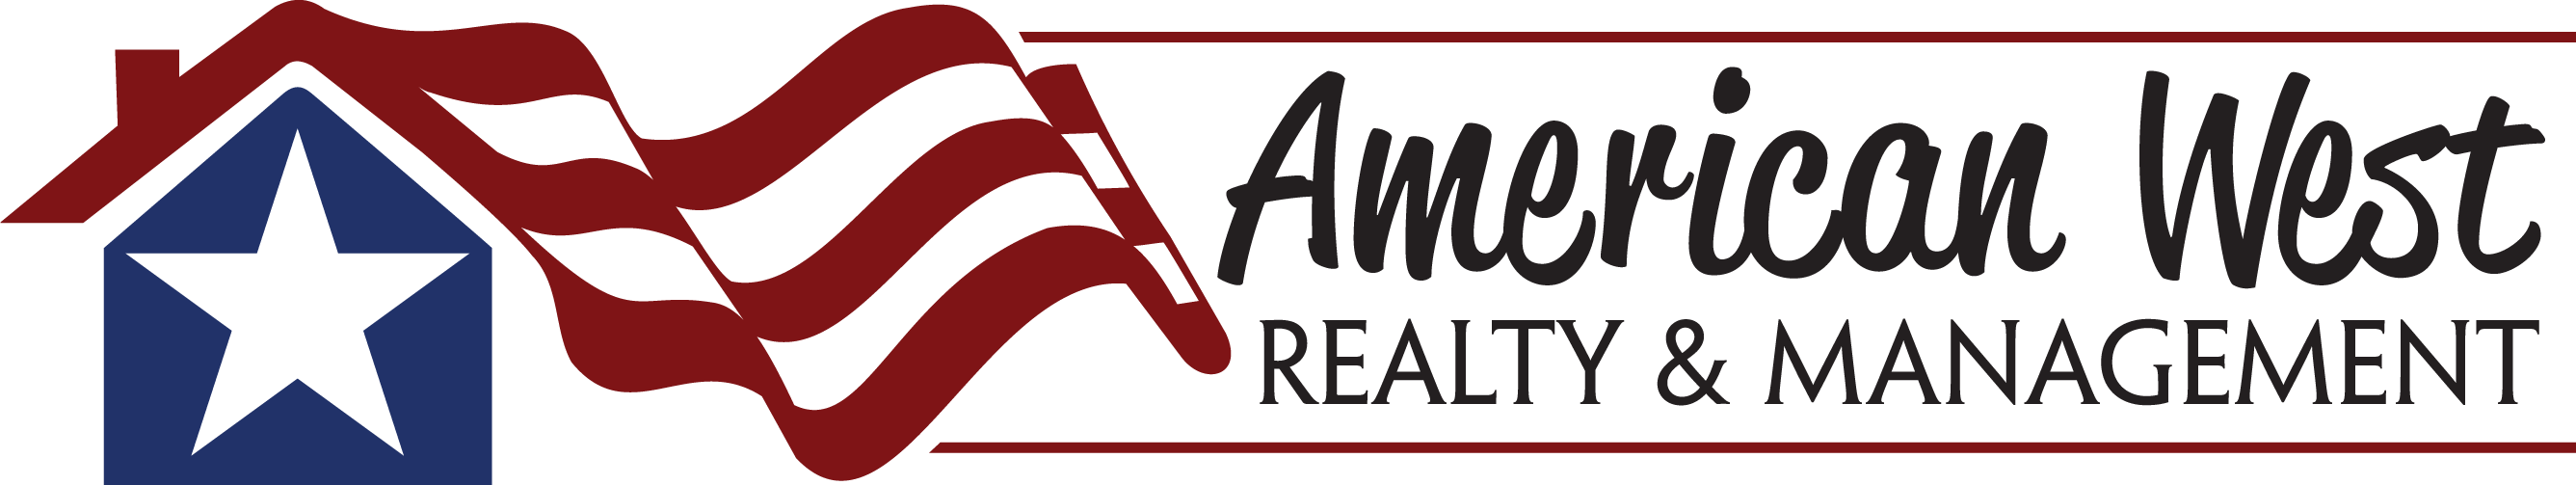 American West Realty and Management Logo